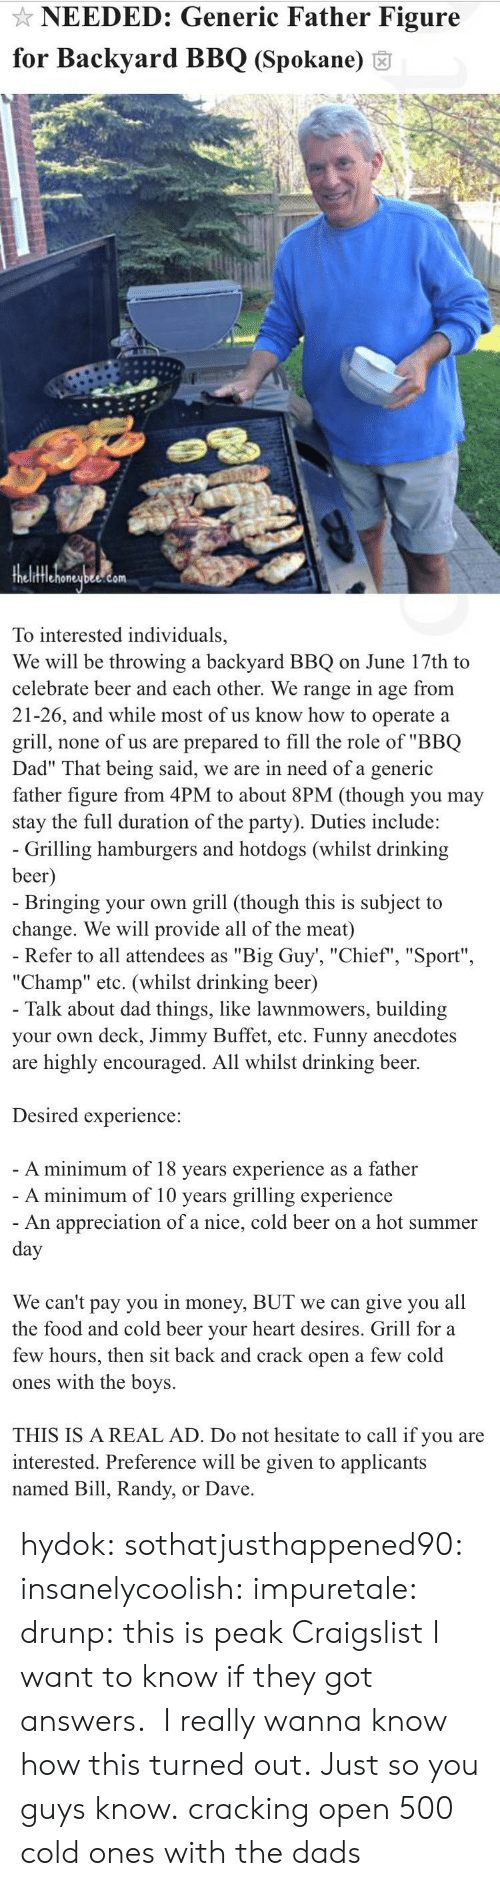 """hesitate: NEEDED: Generic Father Figure  for Backyard BBQ (Spokane) 6  fflehoneubee.com  To interested individuals,  We will be throwing a backyard BBQ on June 17th to  celebrate beer and each other. We range in age from  21-26, and while most of us know how to operate a  grill, none of us are prepared to fill the role of """"BBQ  Dad"""" That being said, we are in need of a generic  father figure from 4PM to about 8PM (though you may  stay the full duration of the party). Duties include:   Grilling hamburgers and hotdogs (whilst drinking  beer  Bringing your own grill (though this is subject to  change. We will provide all of the meat)  Refer to all attendees as """"Big Guy', """"Chief"""", """"Sport""""  """"Champ"""" etc. (whilst drinking beer)  Talk about dad things, like lawnmowers, building  your own deck, Jimmy Buffet, etc. Funny anecdotes  are highly encouraged. All whilst drinking beer.  Desired experience:  A minimum of 18 vears experience as a father  A minimum of 10 years grilling experience  An appreciation of a nice, cold beer on a hot summer  We can't pay you in money, BUT we can give you all  the food and cold beer vour heart desires. Grill for a  few hours, then sit back and crack open a few cold  ones with the boys.  THIS IS A REAL AD. Do not hesitate to call if you are  interested. Preference will be given to applicants  named Bill, Randy, or Dave hydok: sothatjusthappened90:  insanelycoolish:   impuretale:  drunp: this is peak Craigslist I want to know if they got answers.  I really wanna know how this turned out.               Just so you guys know.  cracking open 500 cold ones with the dads"""